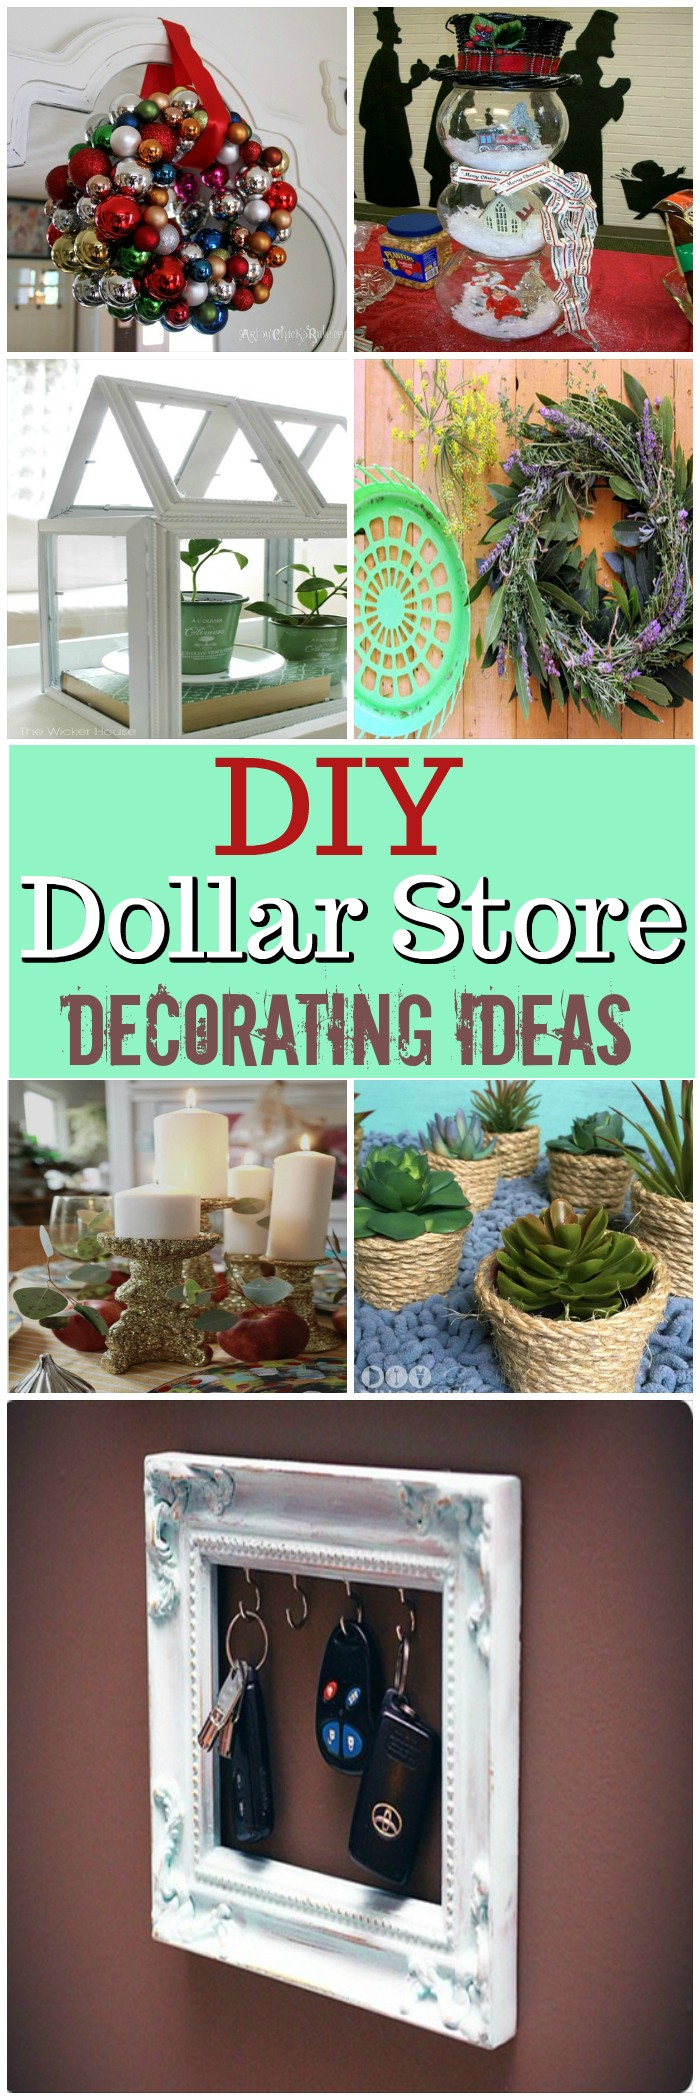 Best Diy Dollar Store Decorating Ideas • Diy Home Decor This Month